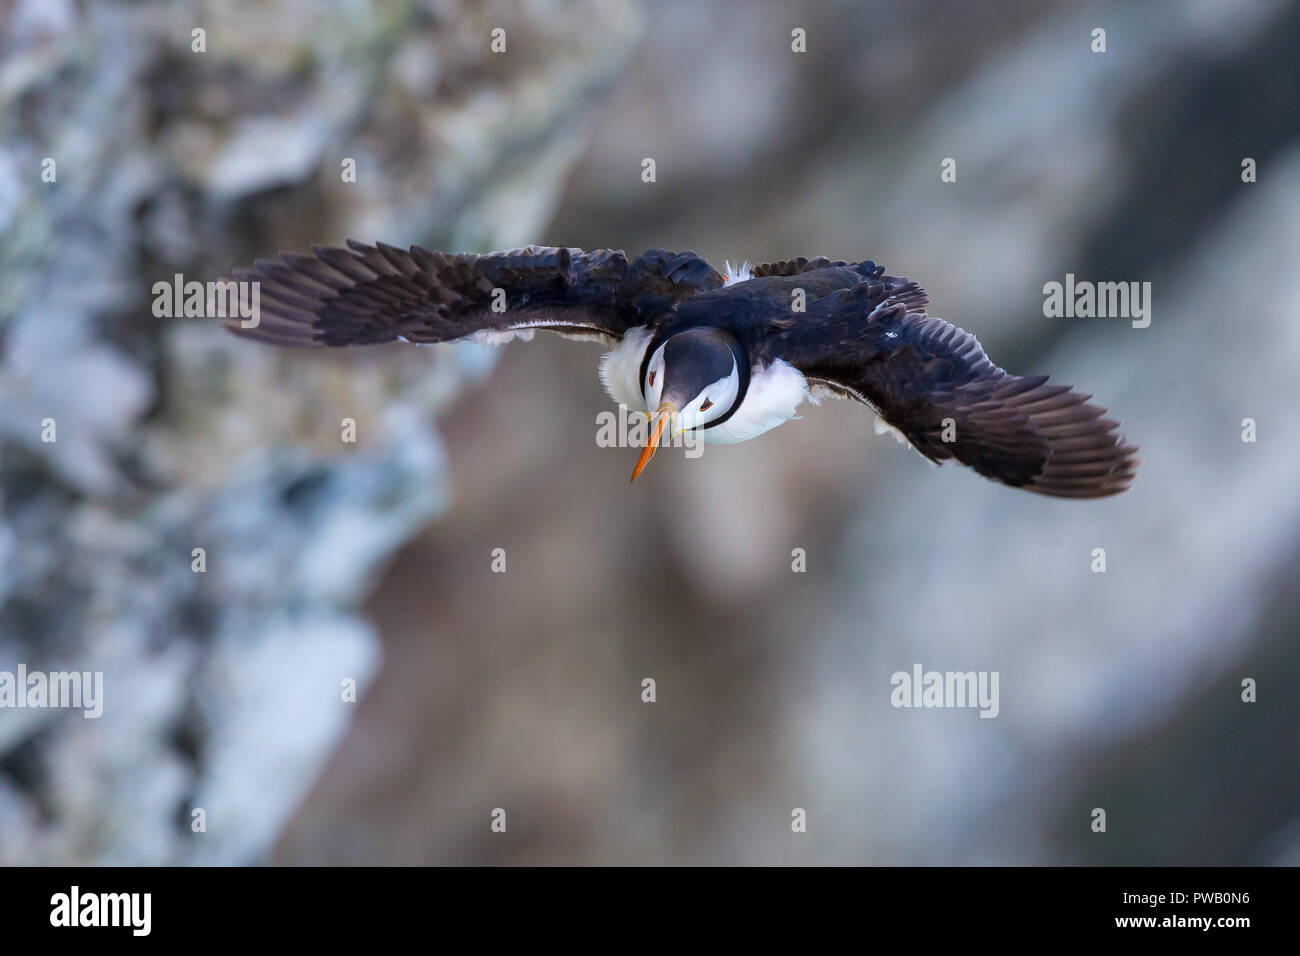 High angle, aerial close up of wild puffin seabird (Fratercula arctica) flying isolated in the breeze, soft-focus cliffs background. Bird's-eye view. - Stock Image